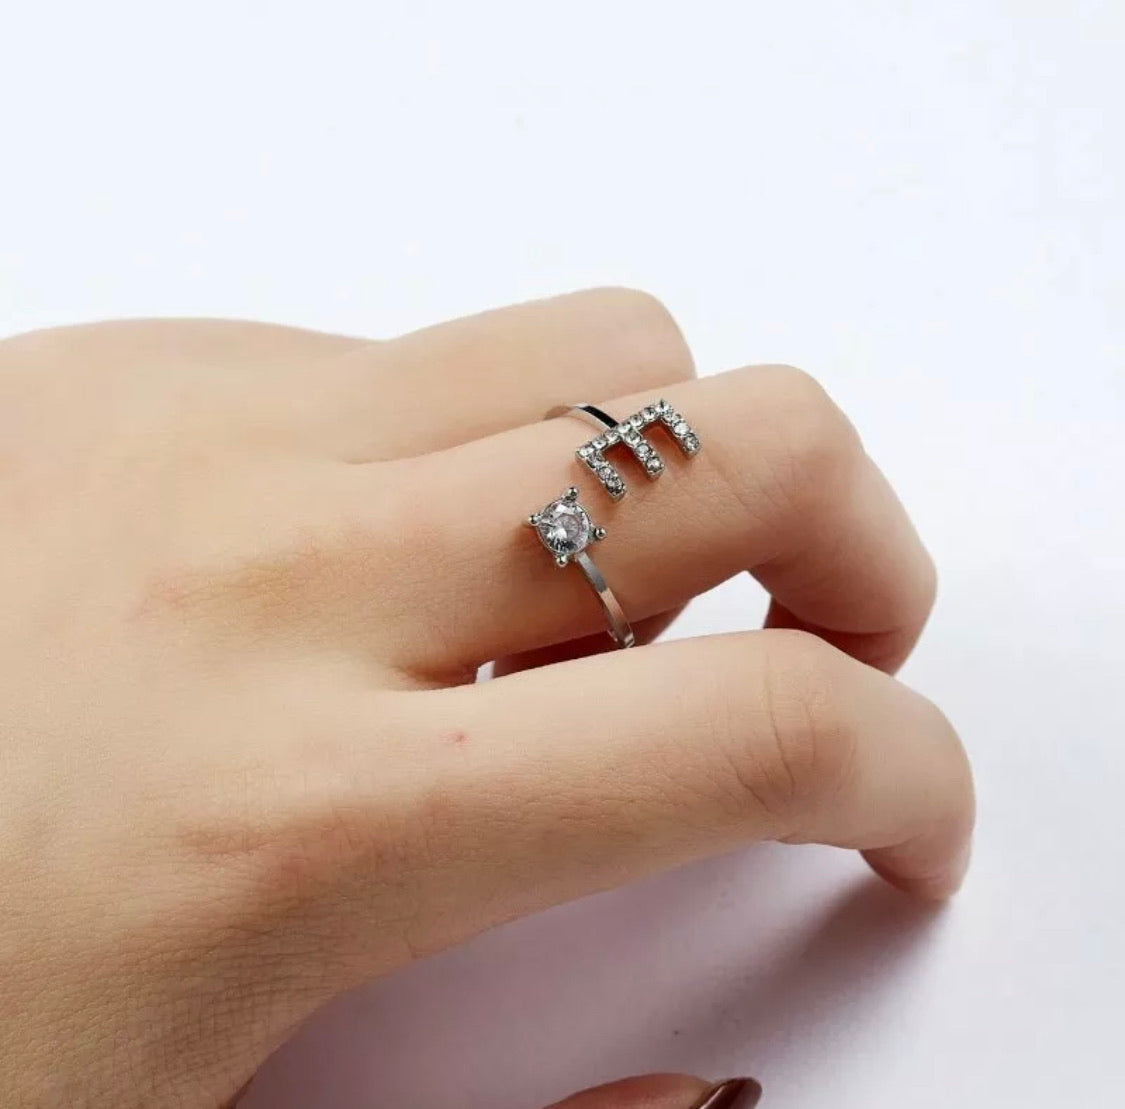 Silver And CZ Diamanté Adjustable Initial Ring